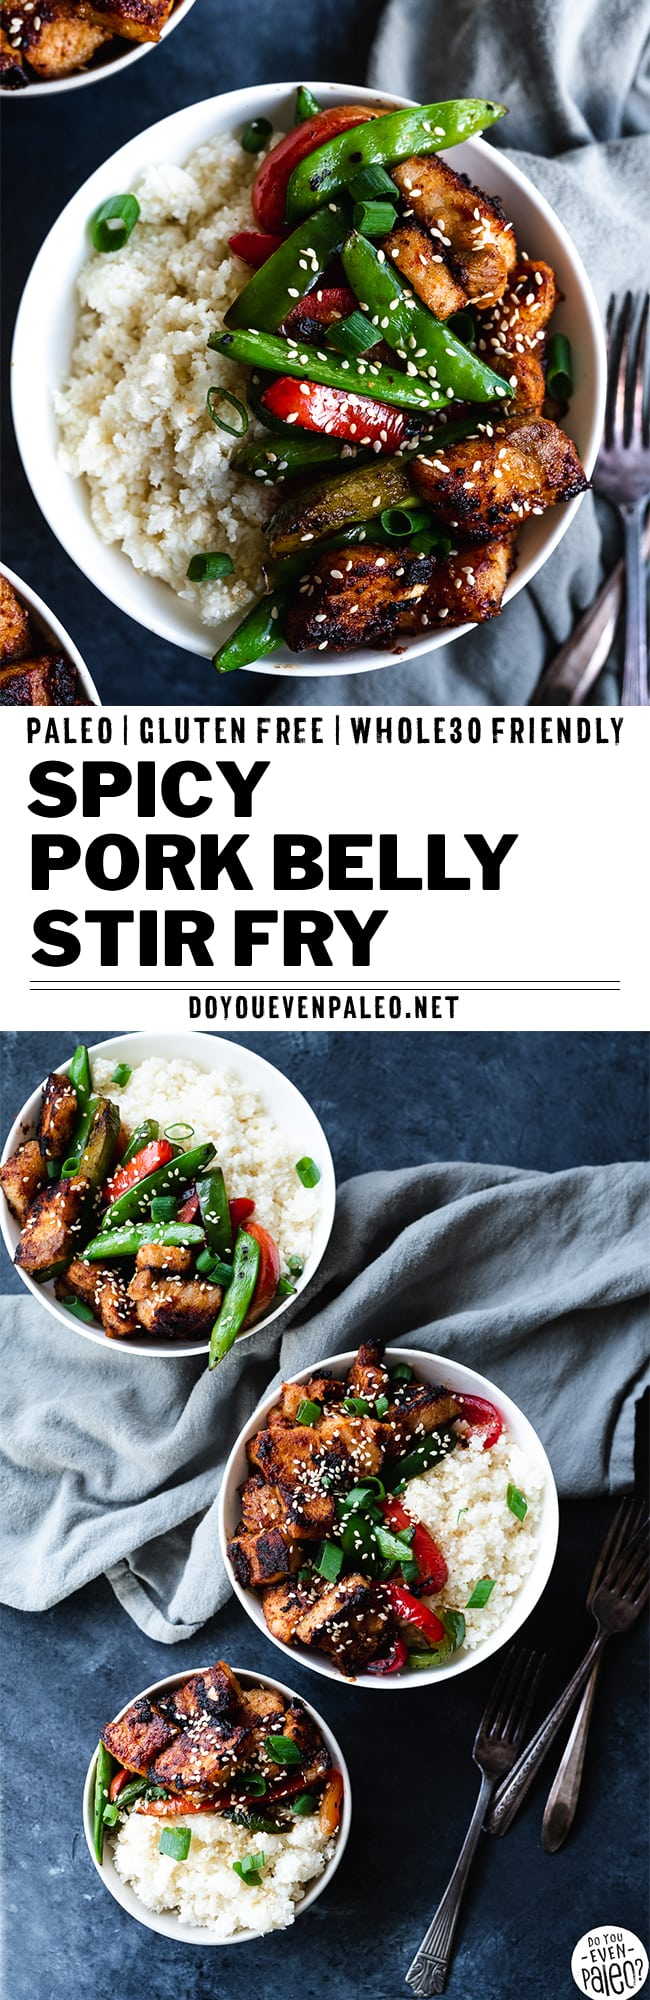 Pork Belly Stir Fry Recipe image with text overlay reading 'spicy pork belly stir fry paleo gluten free whole30 friendly' by DoYouEvenPaleo.net